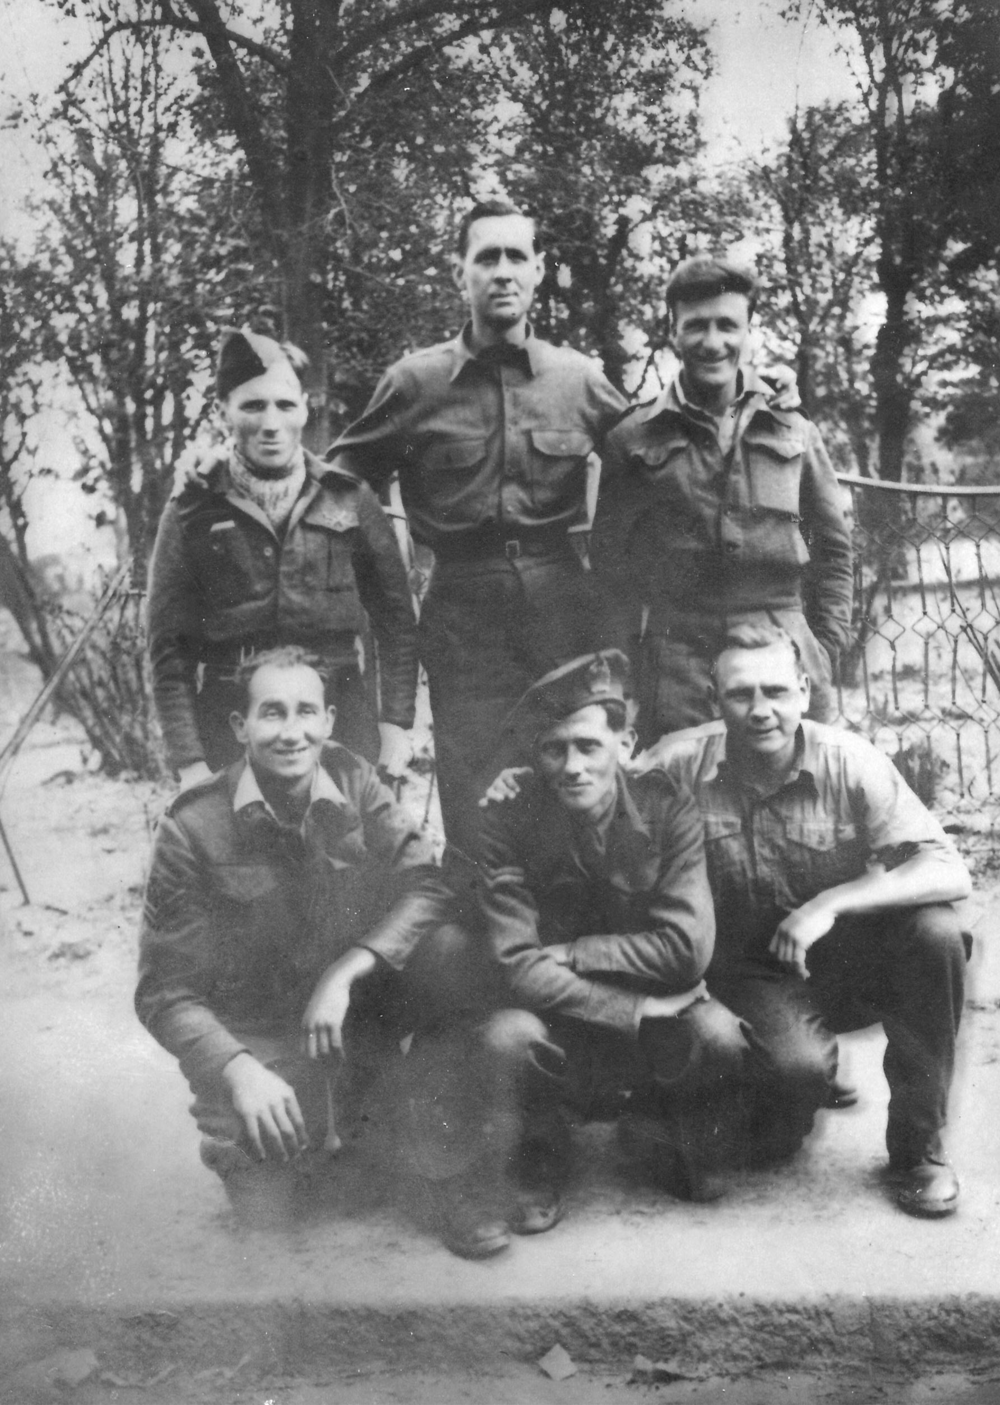 - Bruce Murray (back row, right hand side) at a POW Work Camp.